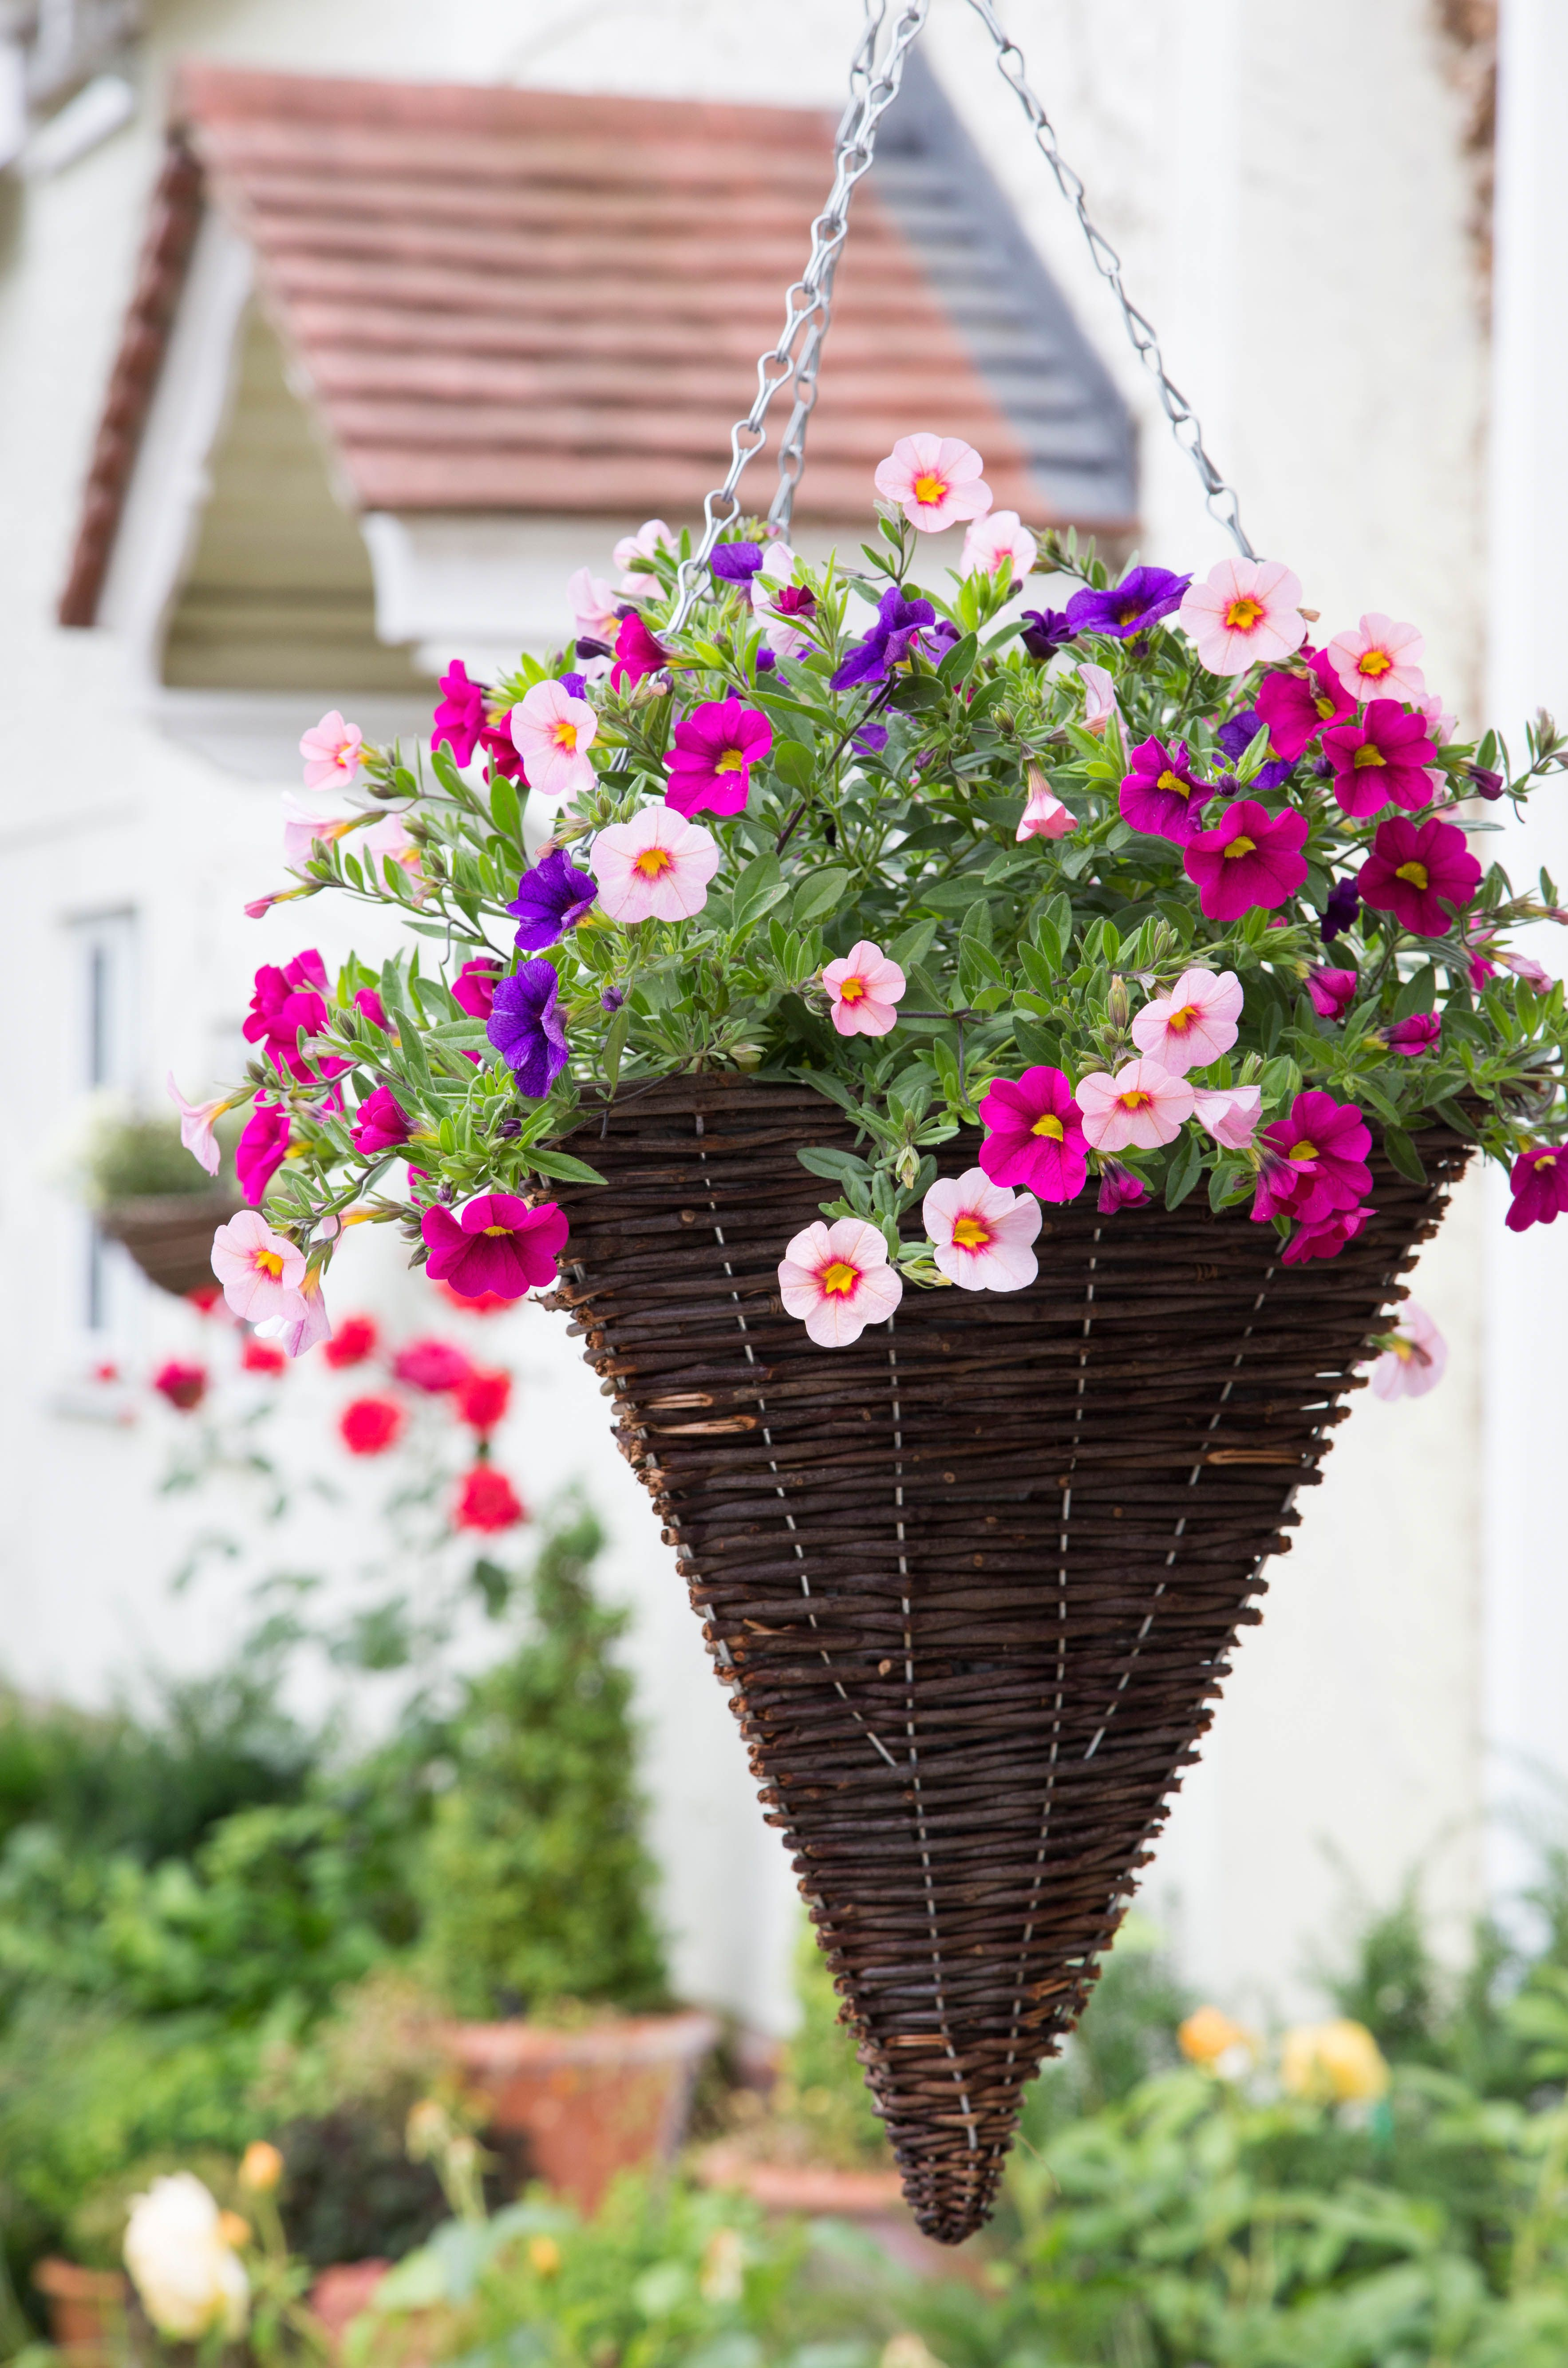 Pin By Bordine S On It Starts With A Pot Hanging Flower Baskets